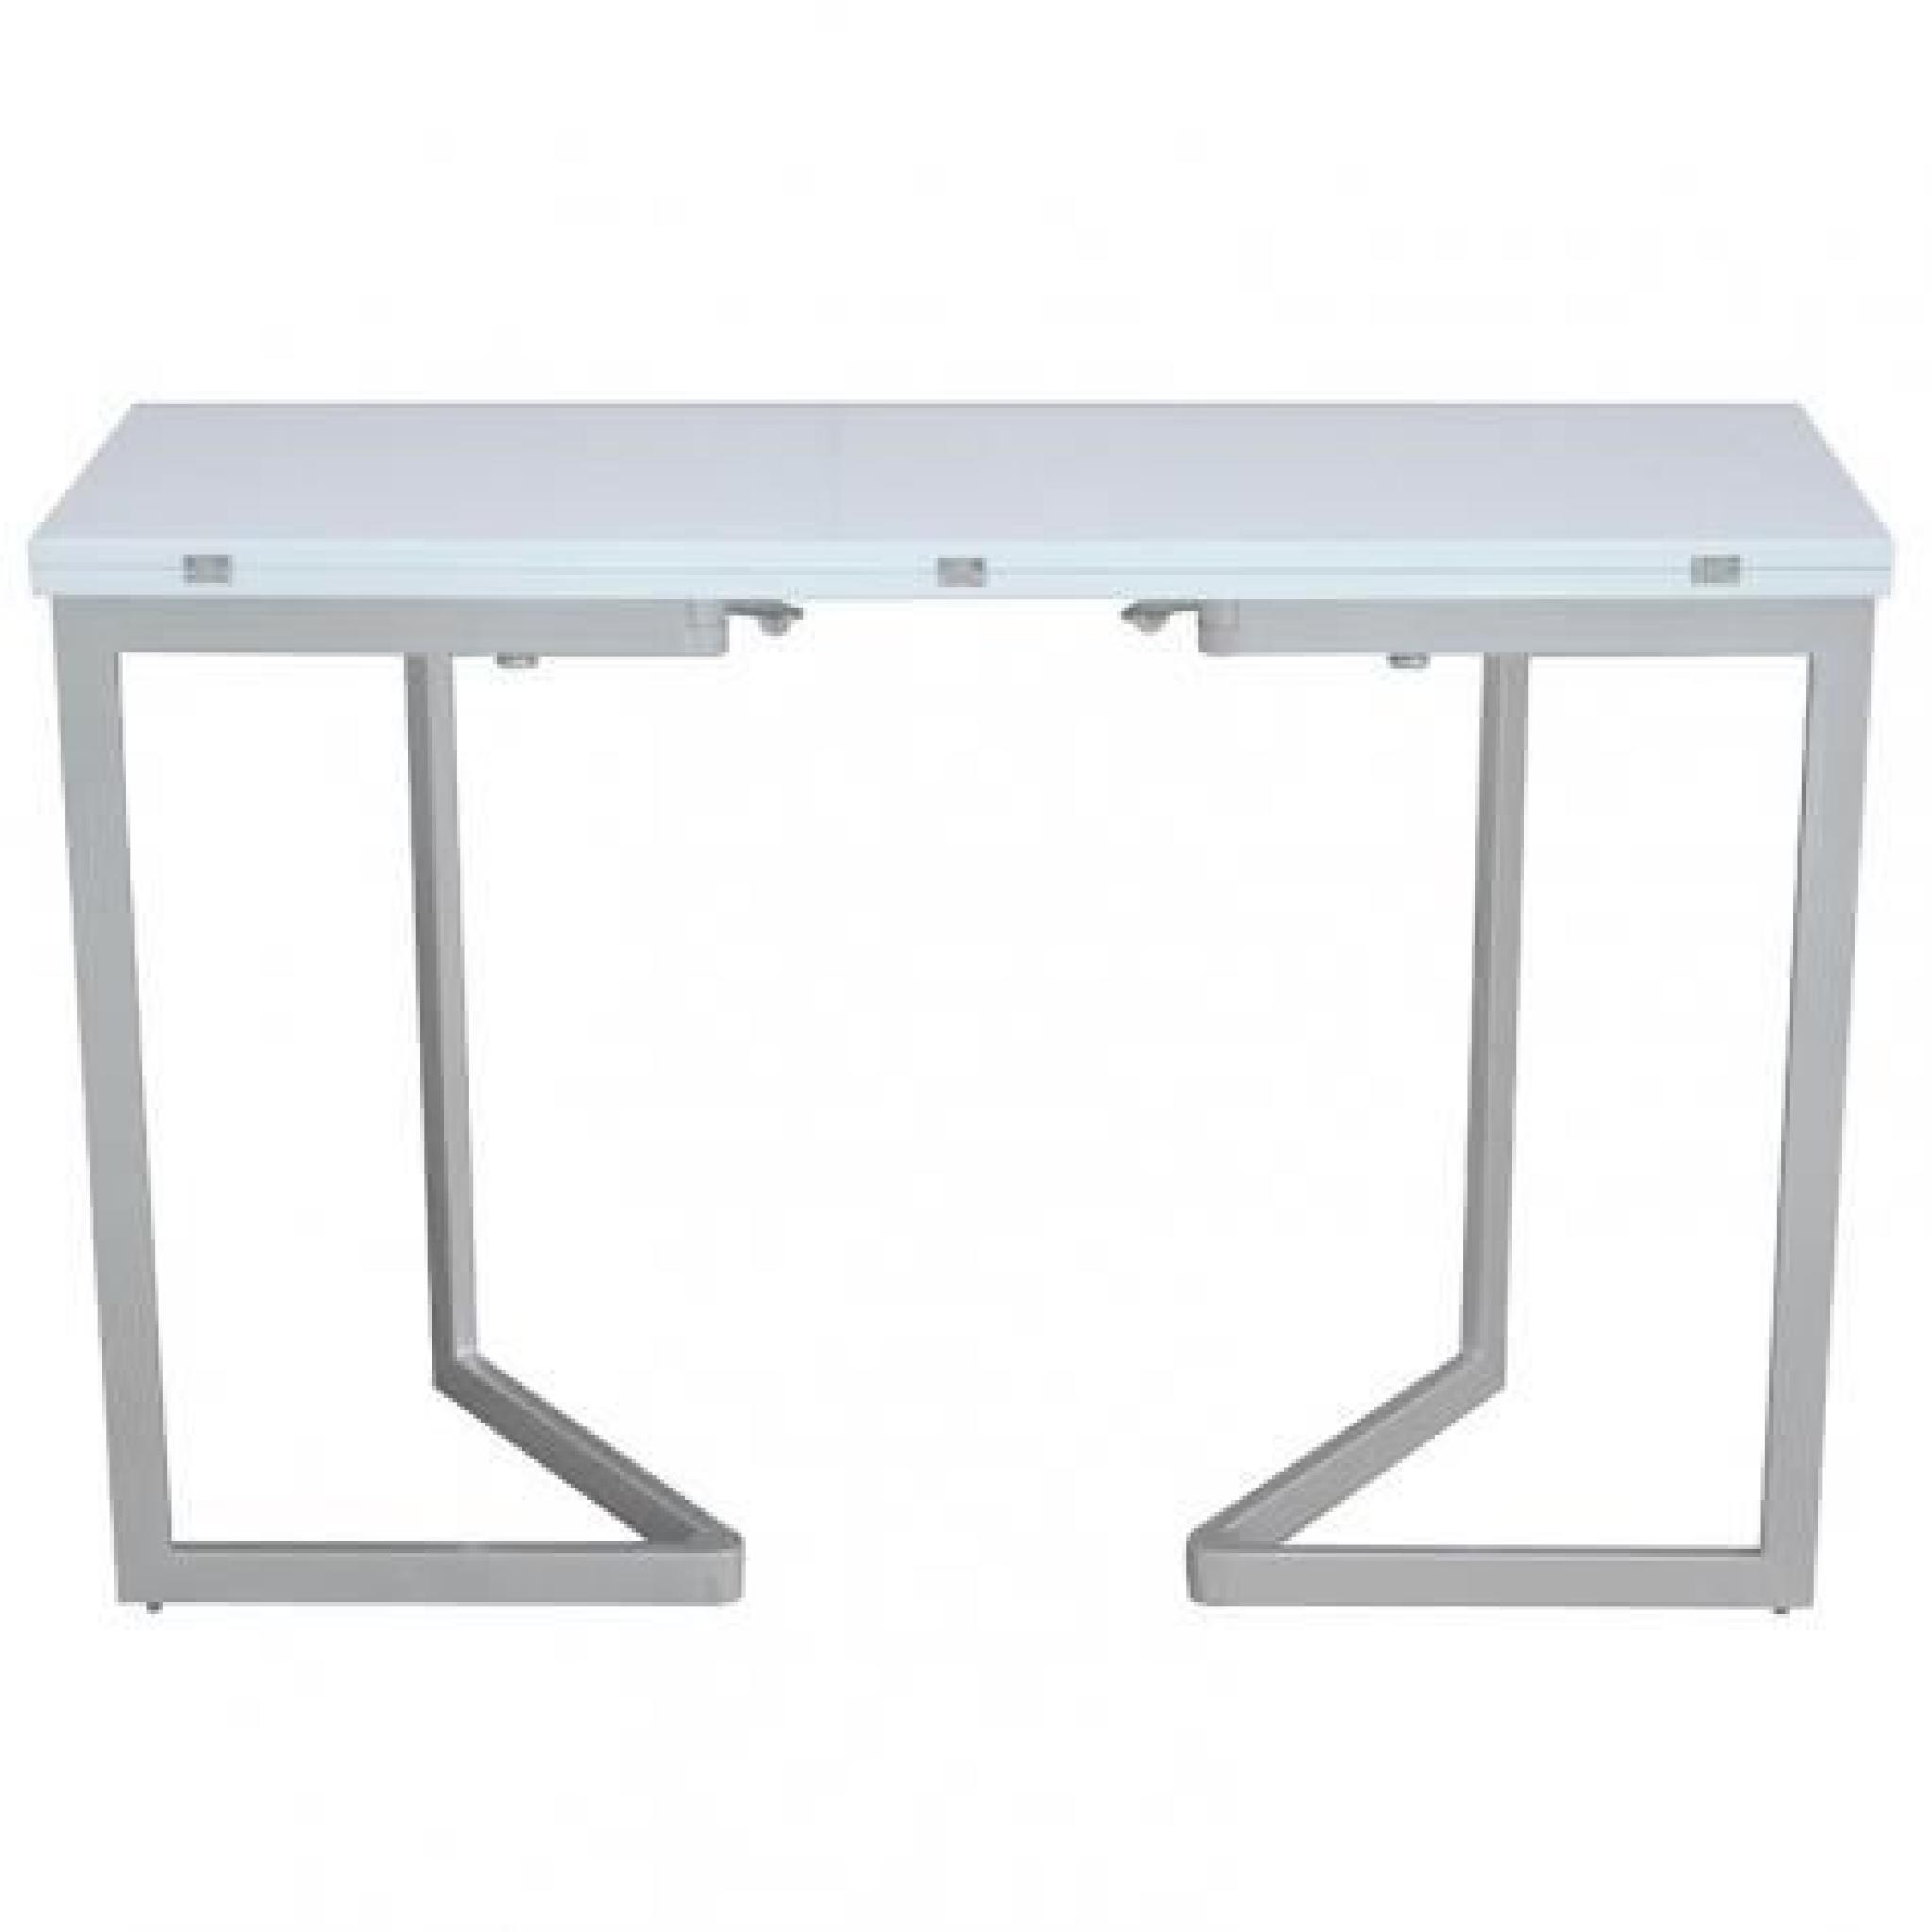 Table extensible blanche laquee maison design for Table console extensible rallonges incorporees